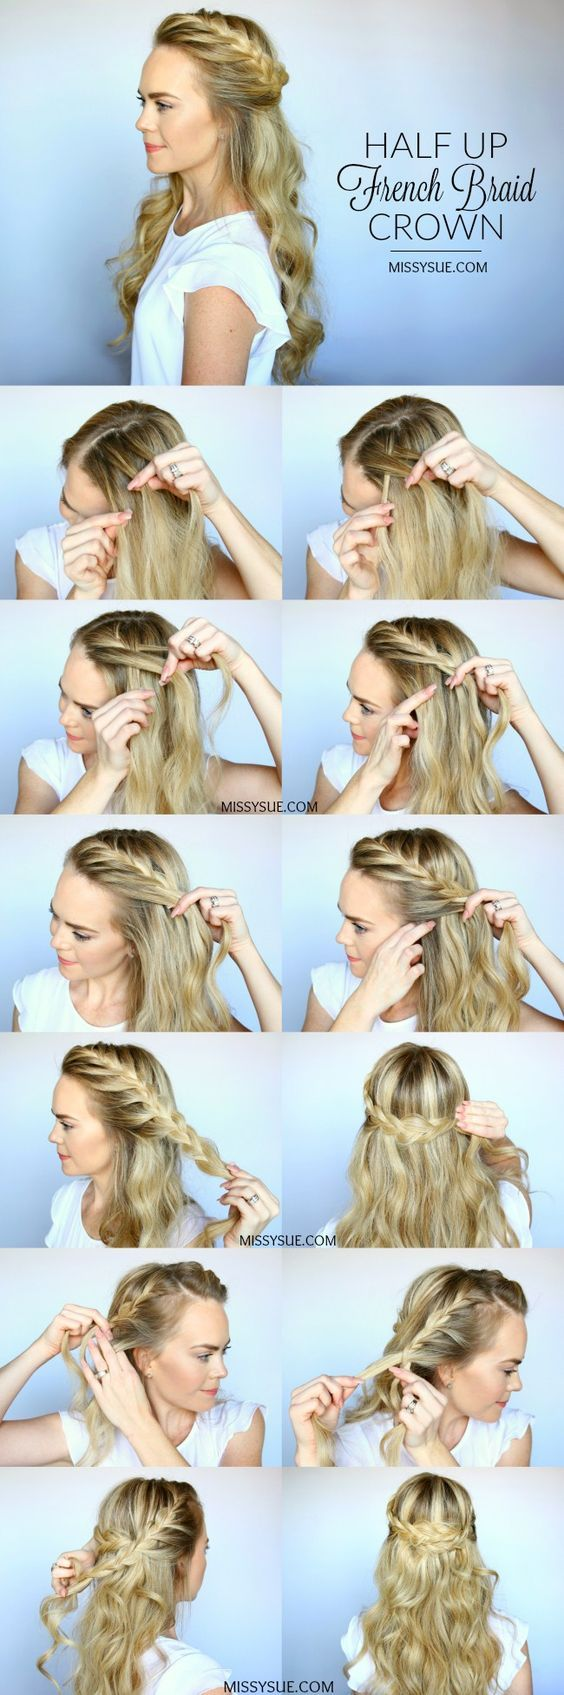 easy braided hairstyle tutorials that anyone can master easy